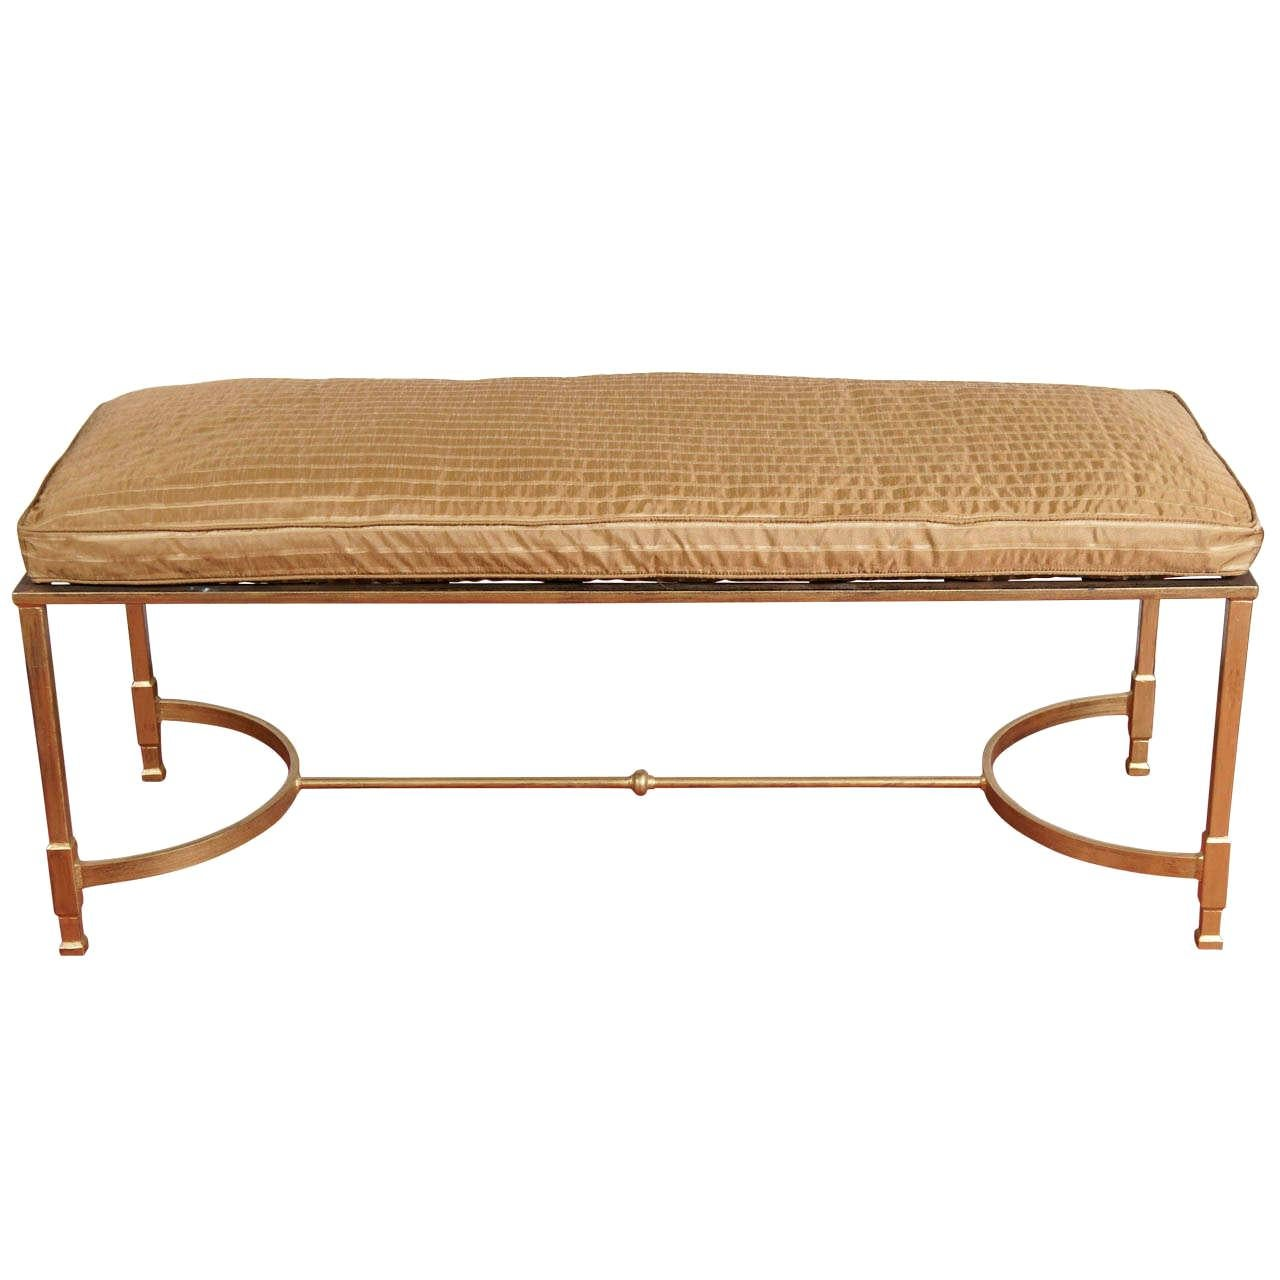 Custom Made Neoclassical Style Metal Bench or Coffee Table